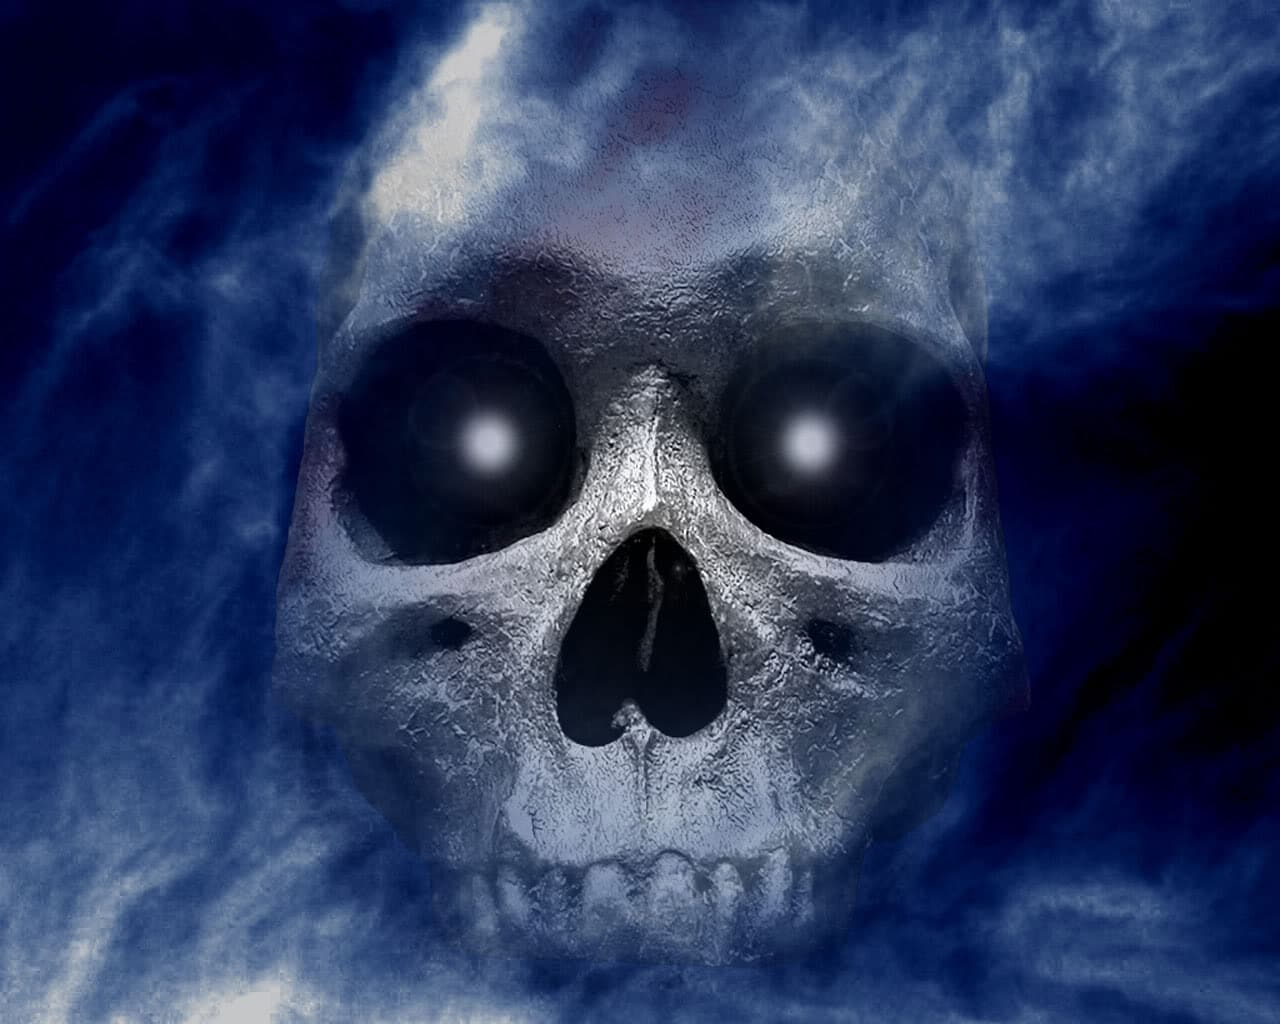 Freaky Halloween Wallpapers on Stunningmesh